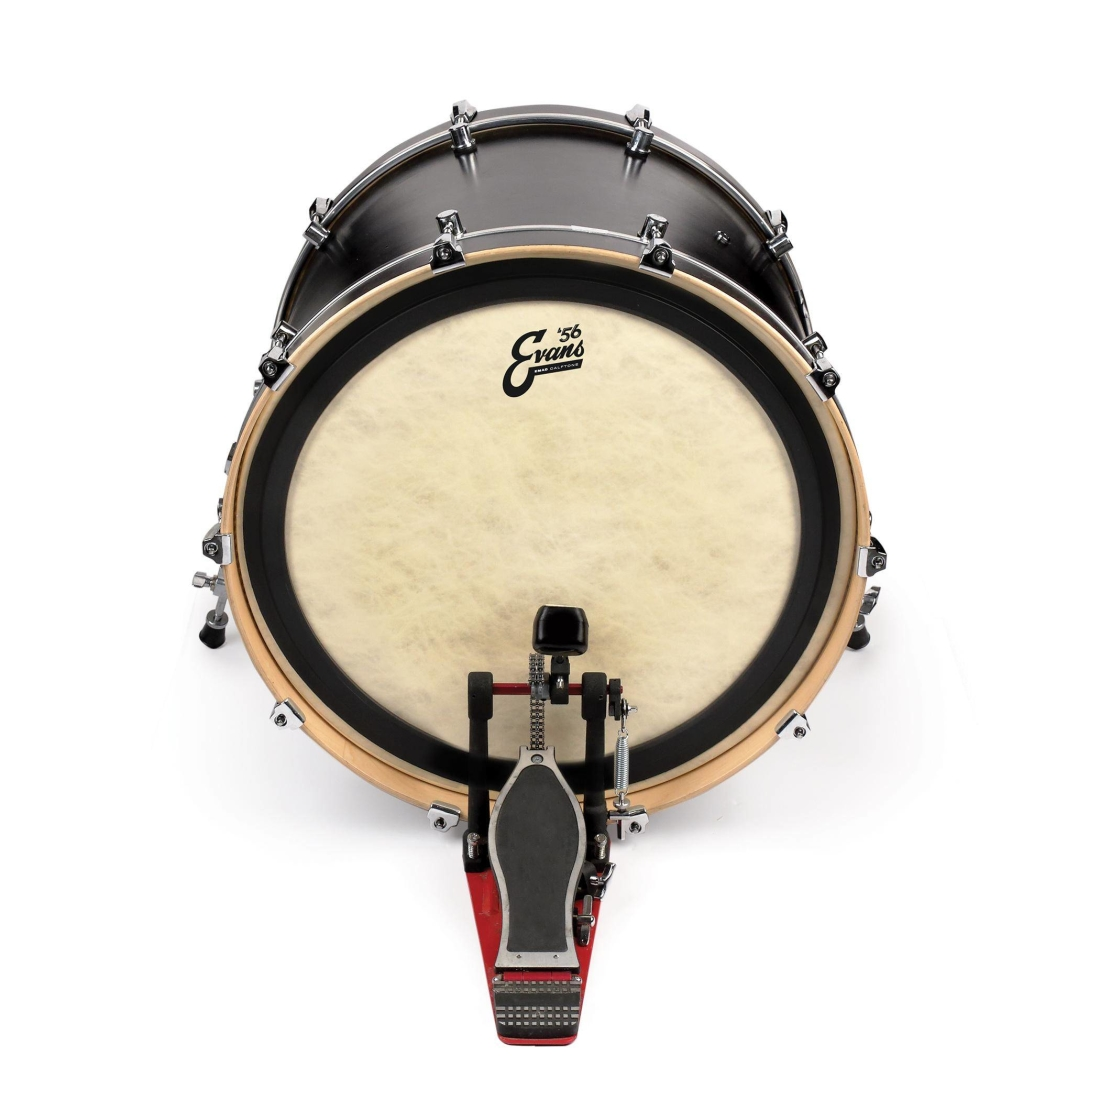 evans emad calftone bass drum head 22 inch long mcquade musical instruments. Black Bedroom Furniture Sets. Home Design Ideas